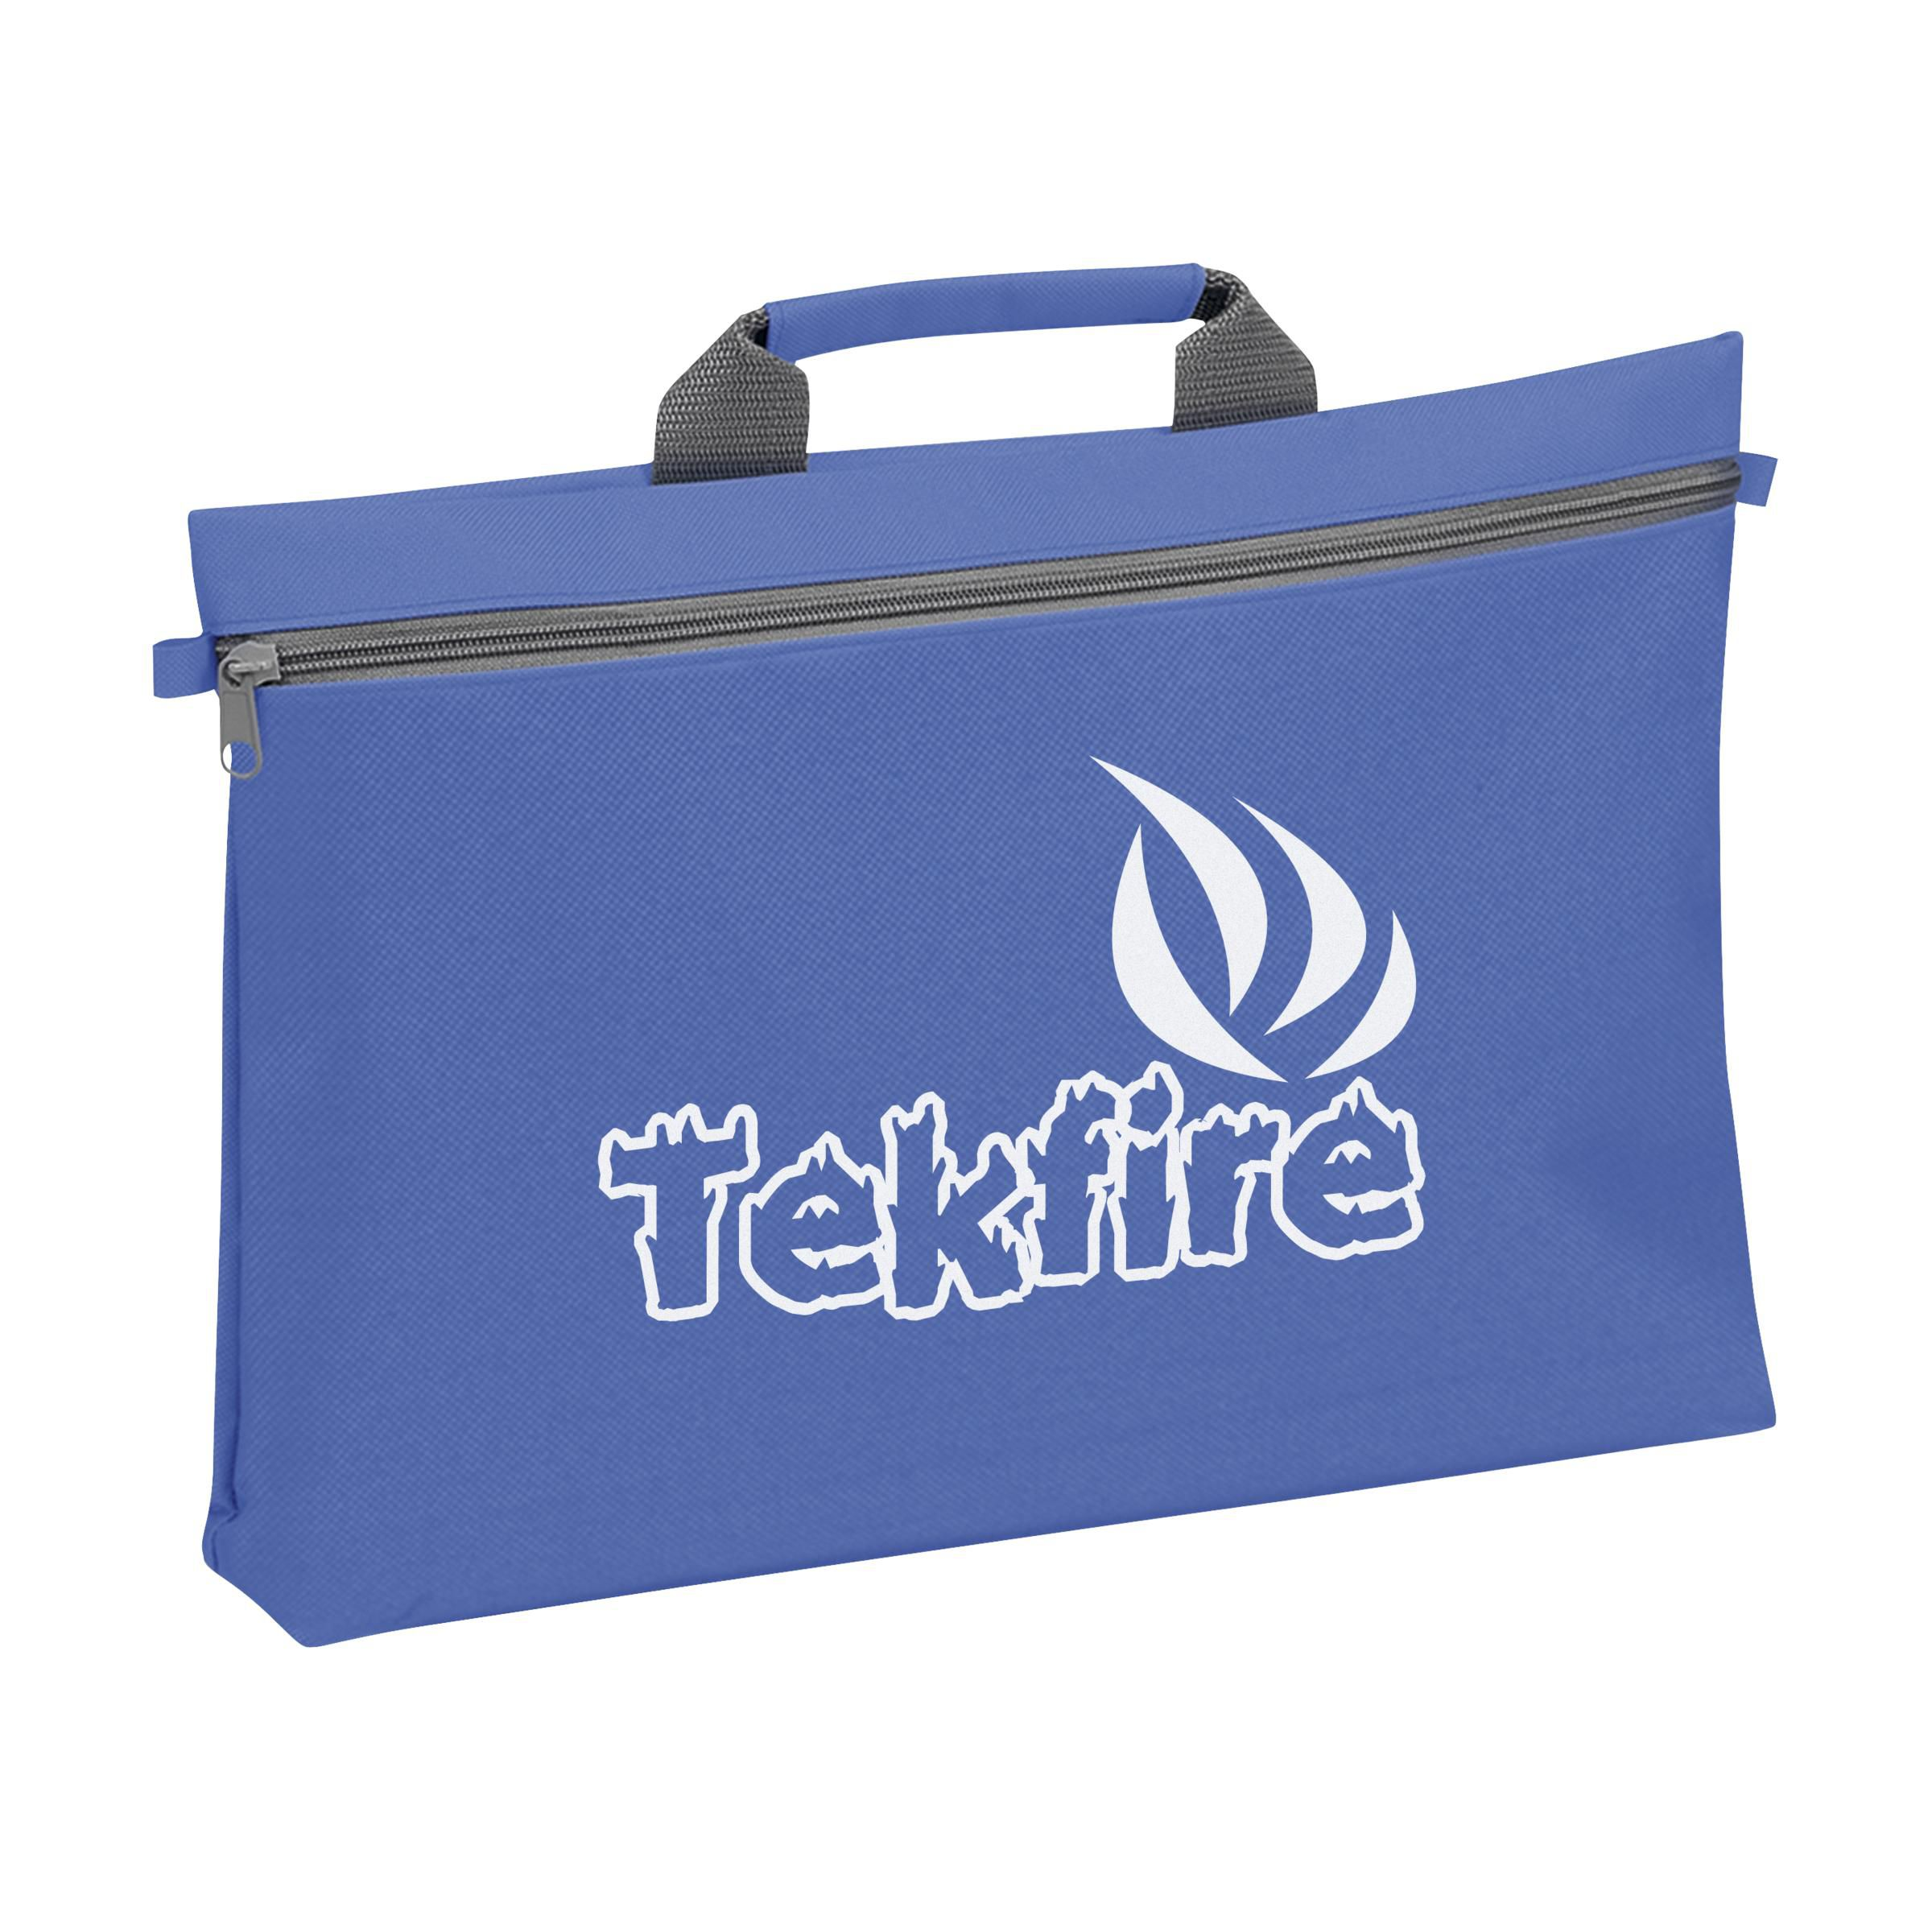 Promotional Orlando zippered conference bag with pen loop